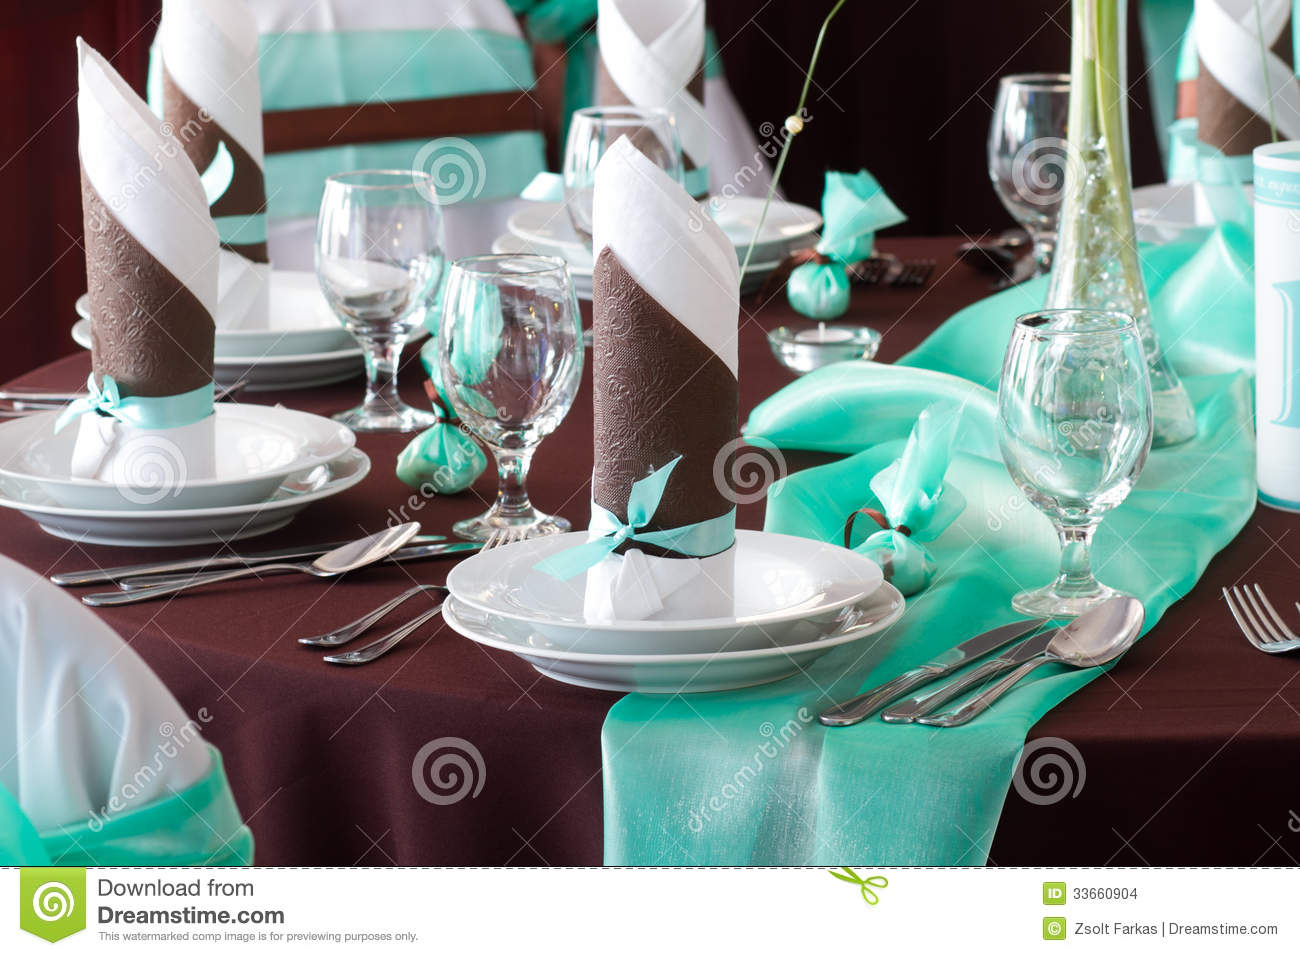 Wedding Table Set With Decoration For Fine Dining Or  : wedding table set decoration fine dining another catered event brown turquoise napkin plate cutlery 33660904 from www.dreamstime.com size 1300 x 956 jpeg 156kB